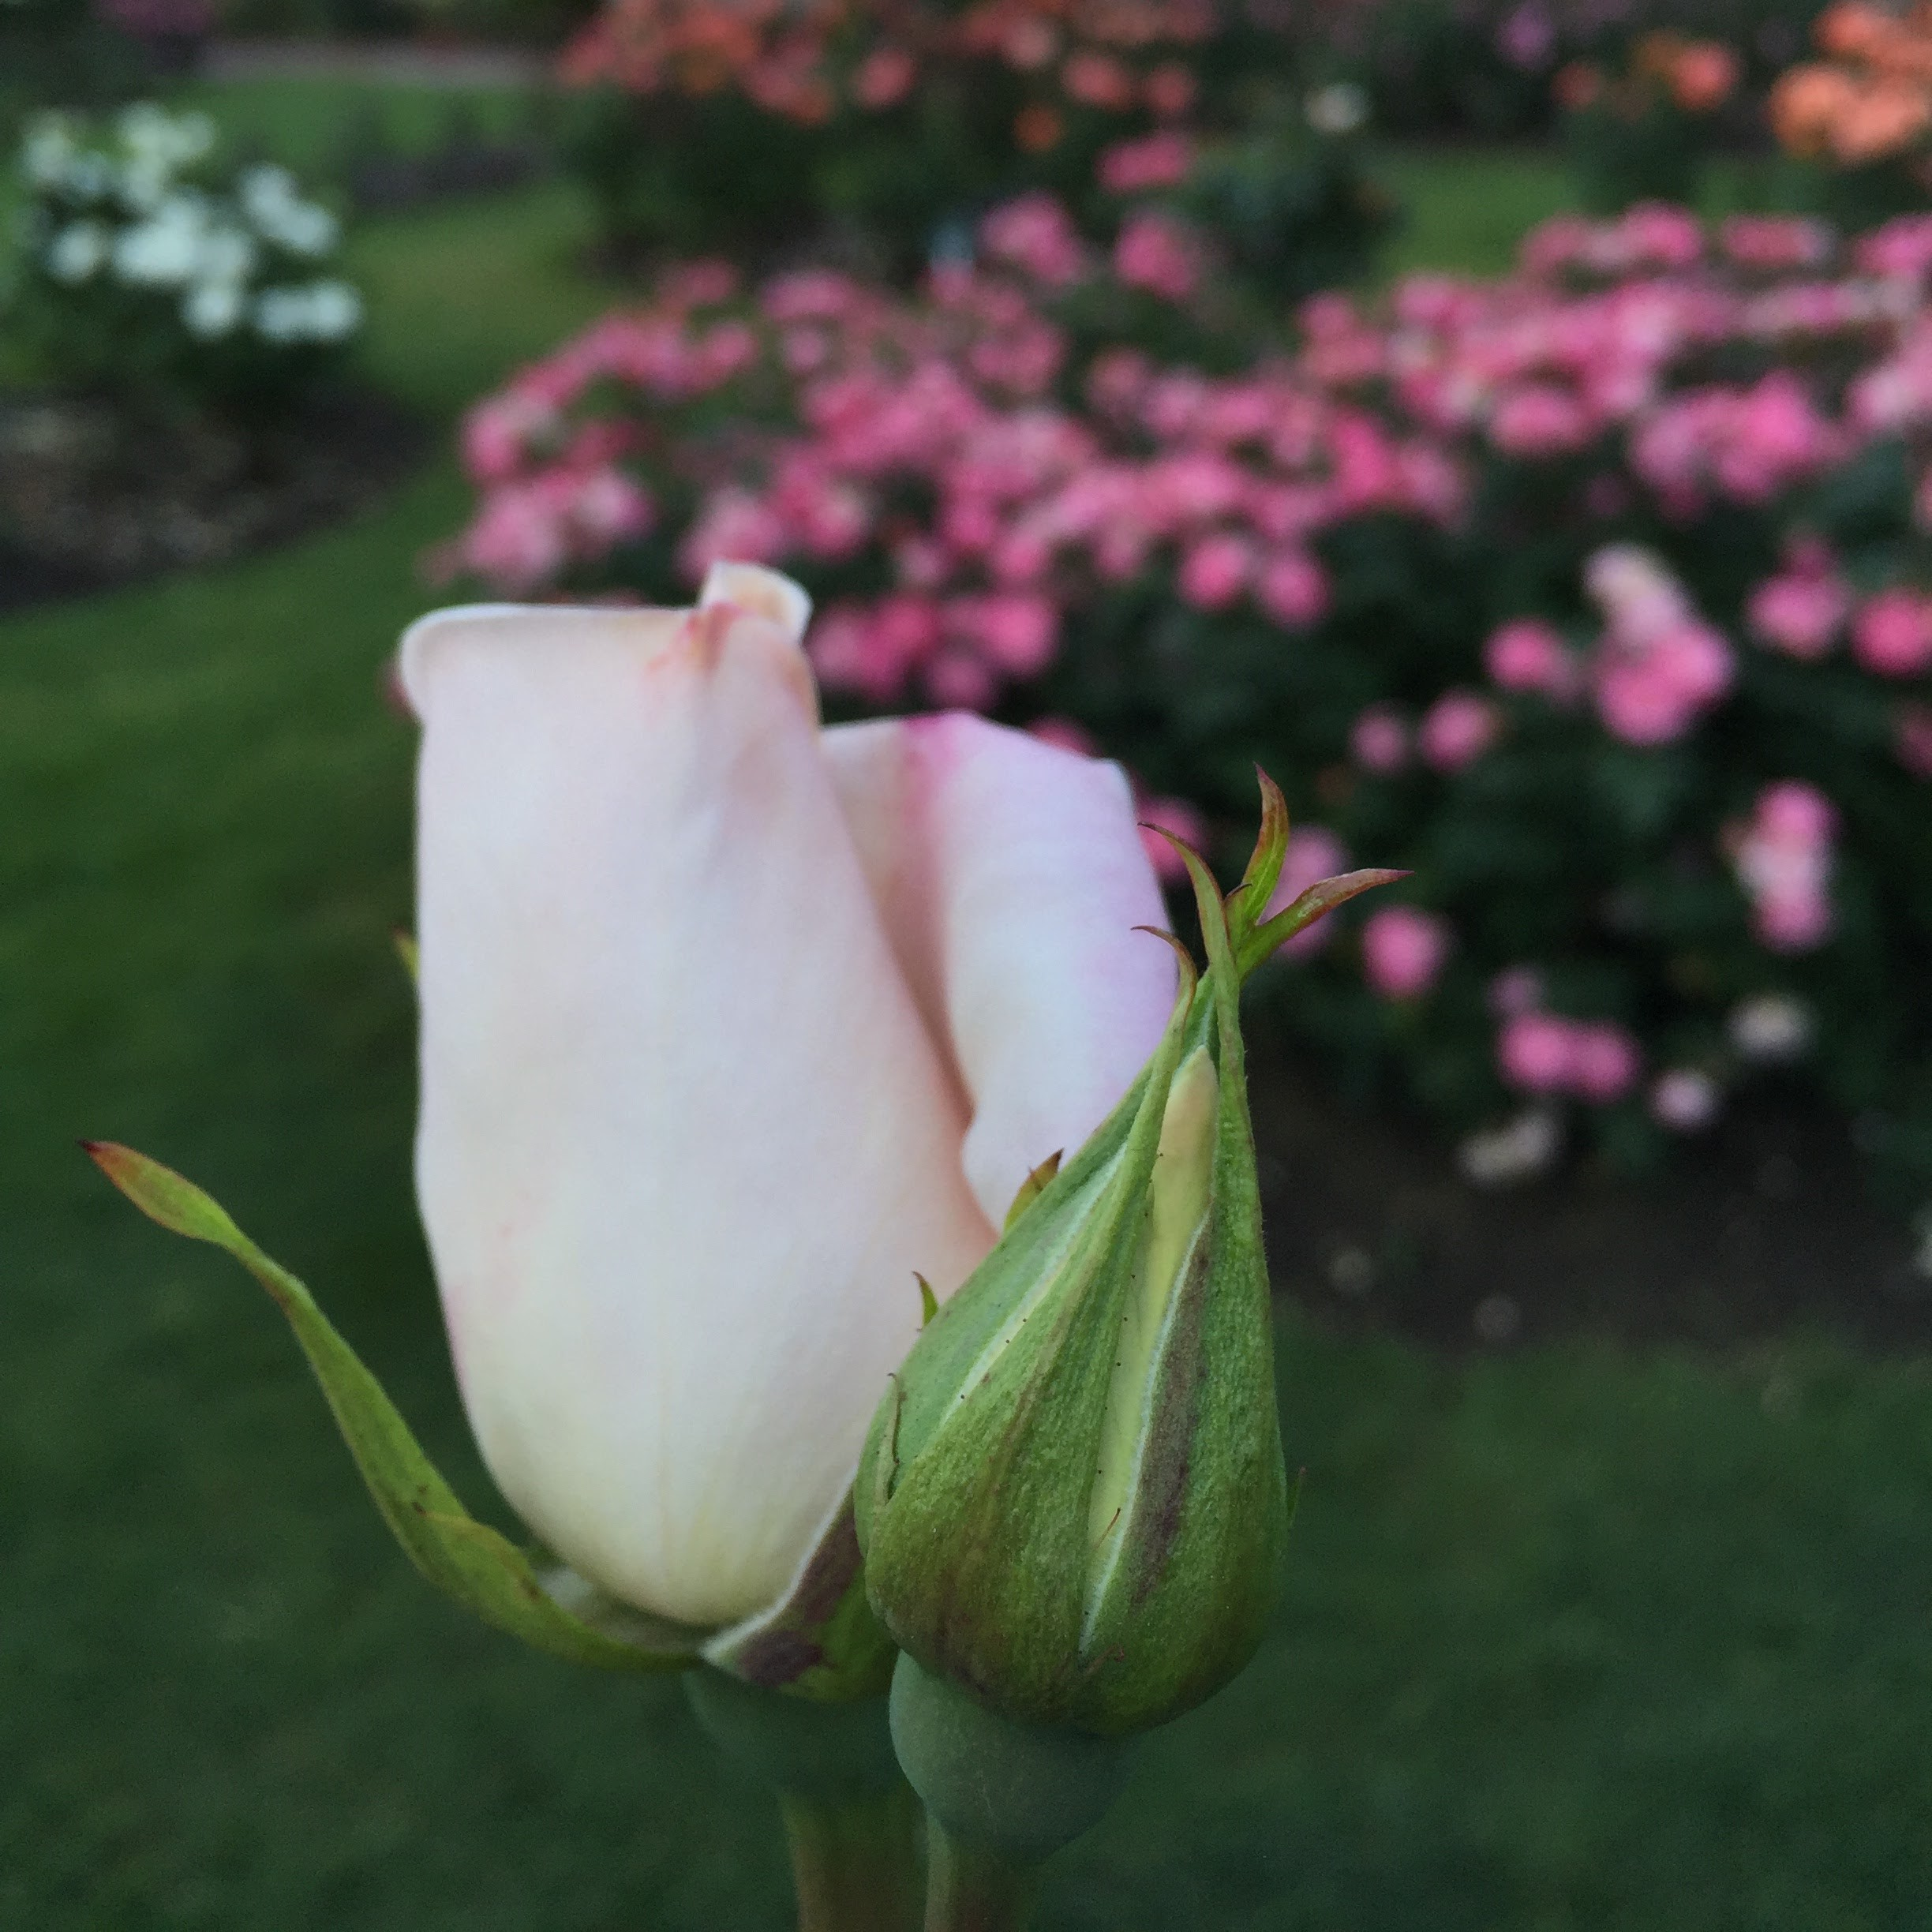 Image of a Rose bud